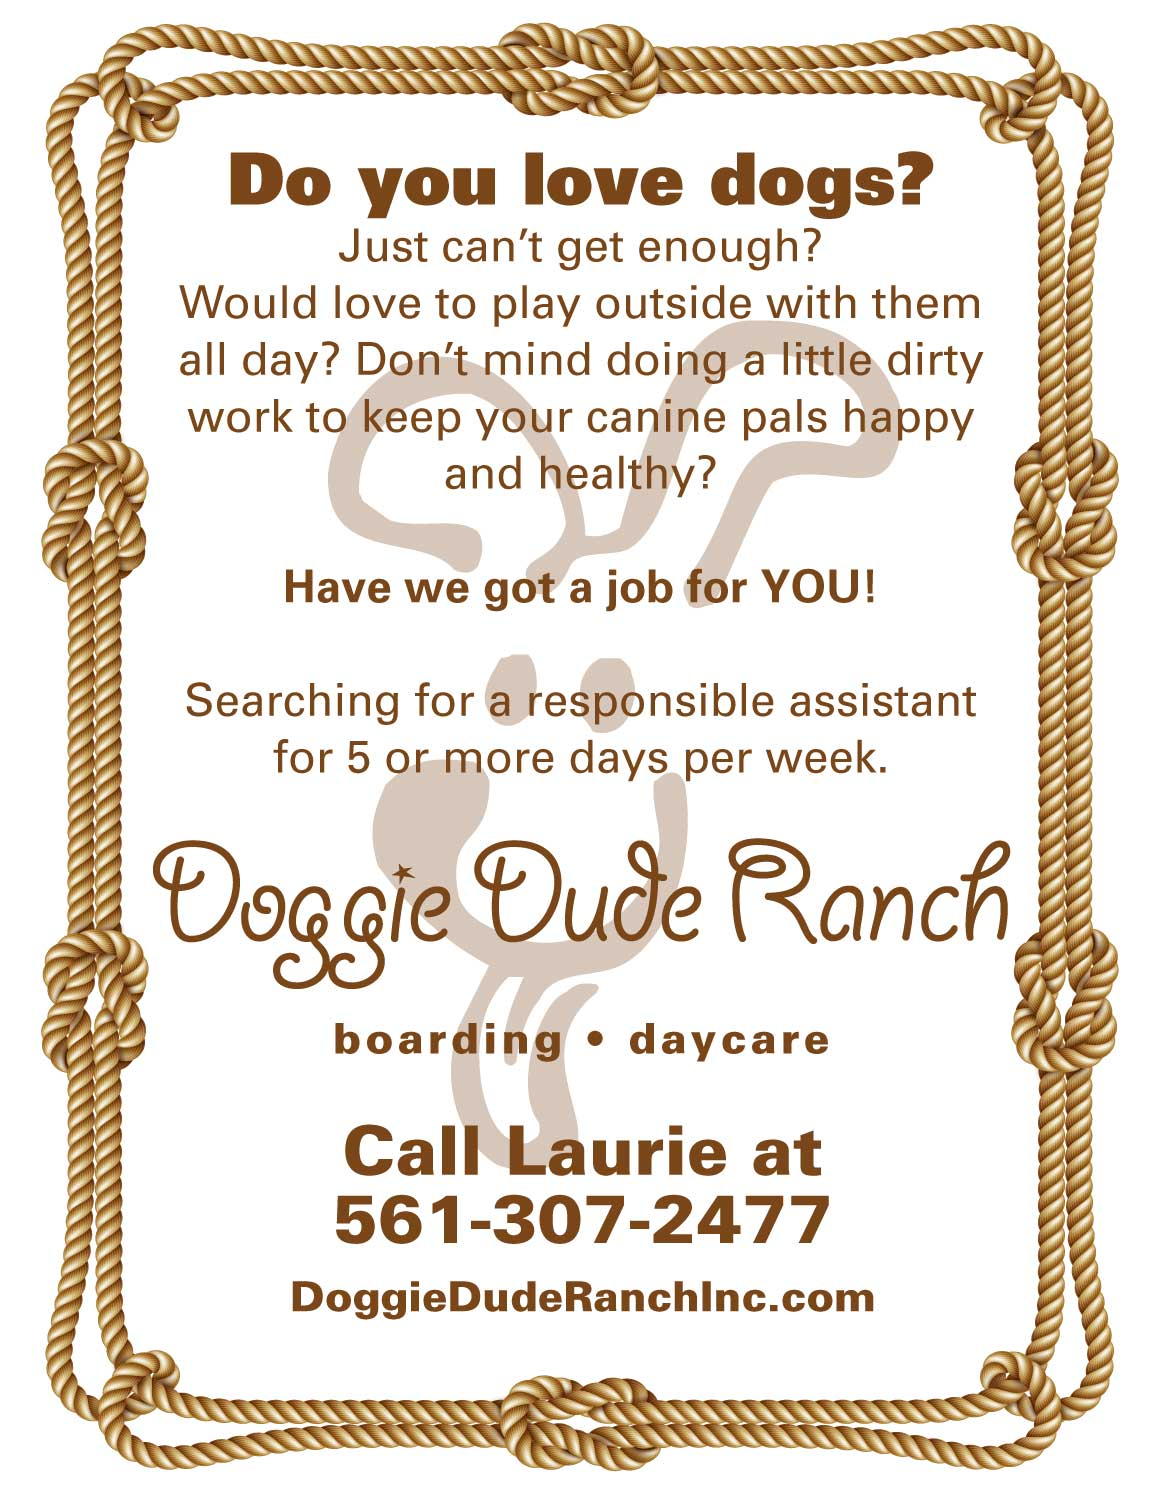 Doggie Dude Ranch Help Wanted